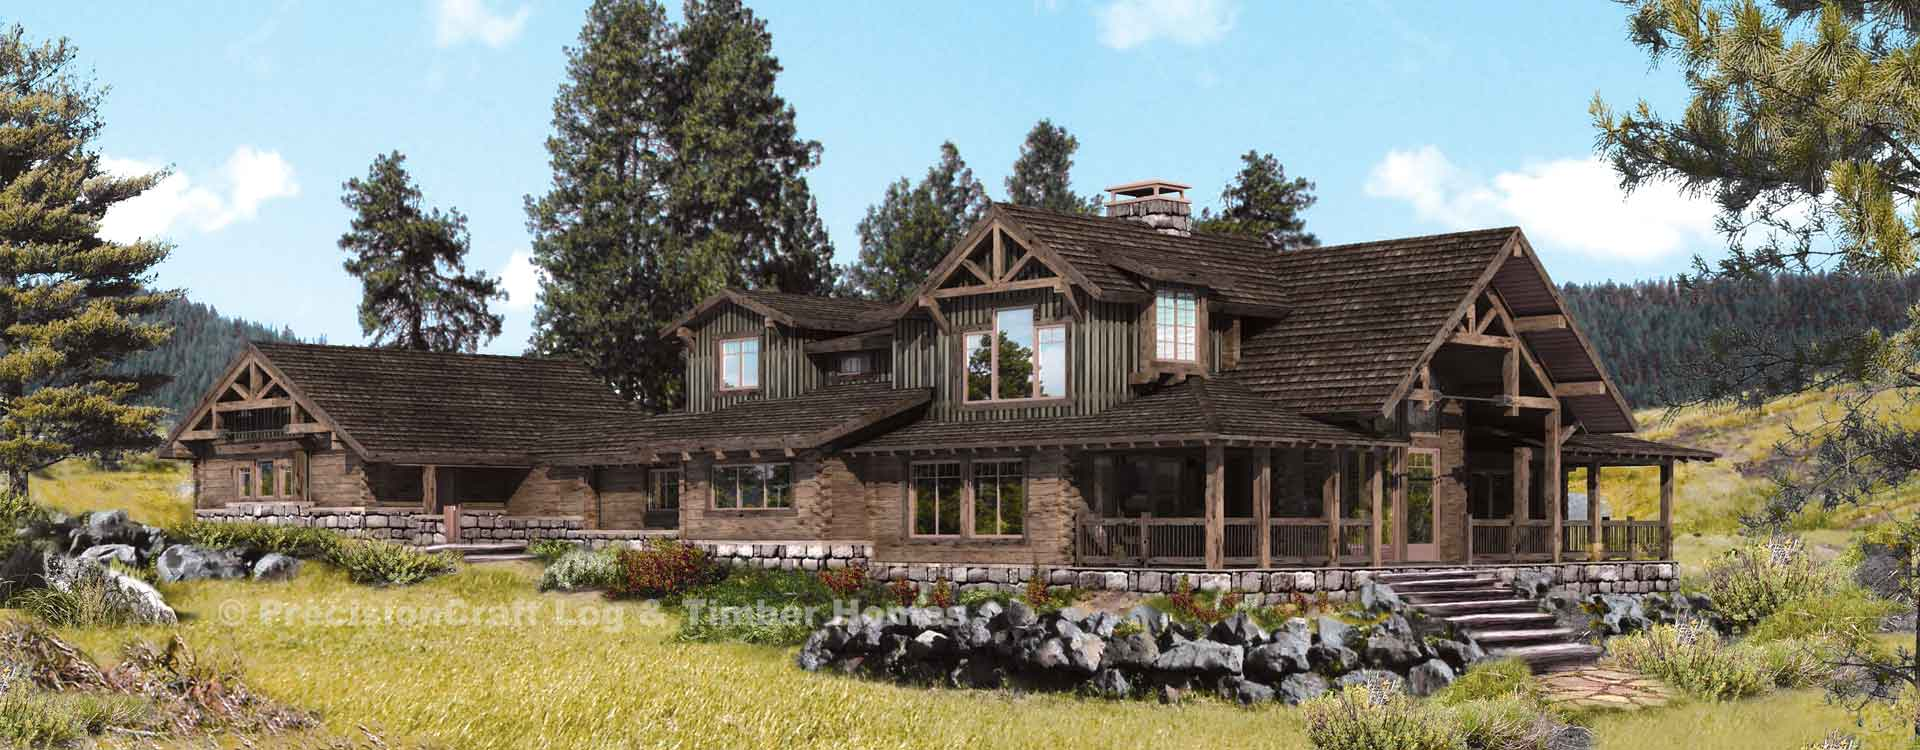 Trailside Rendering